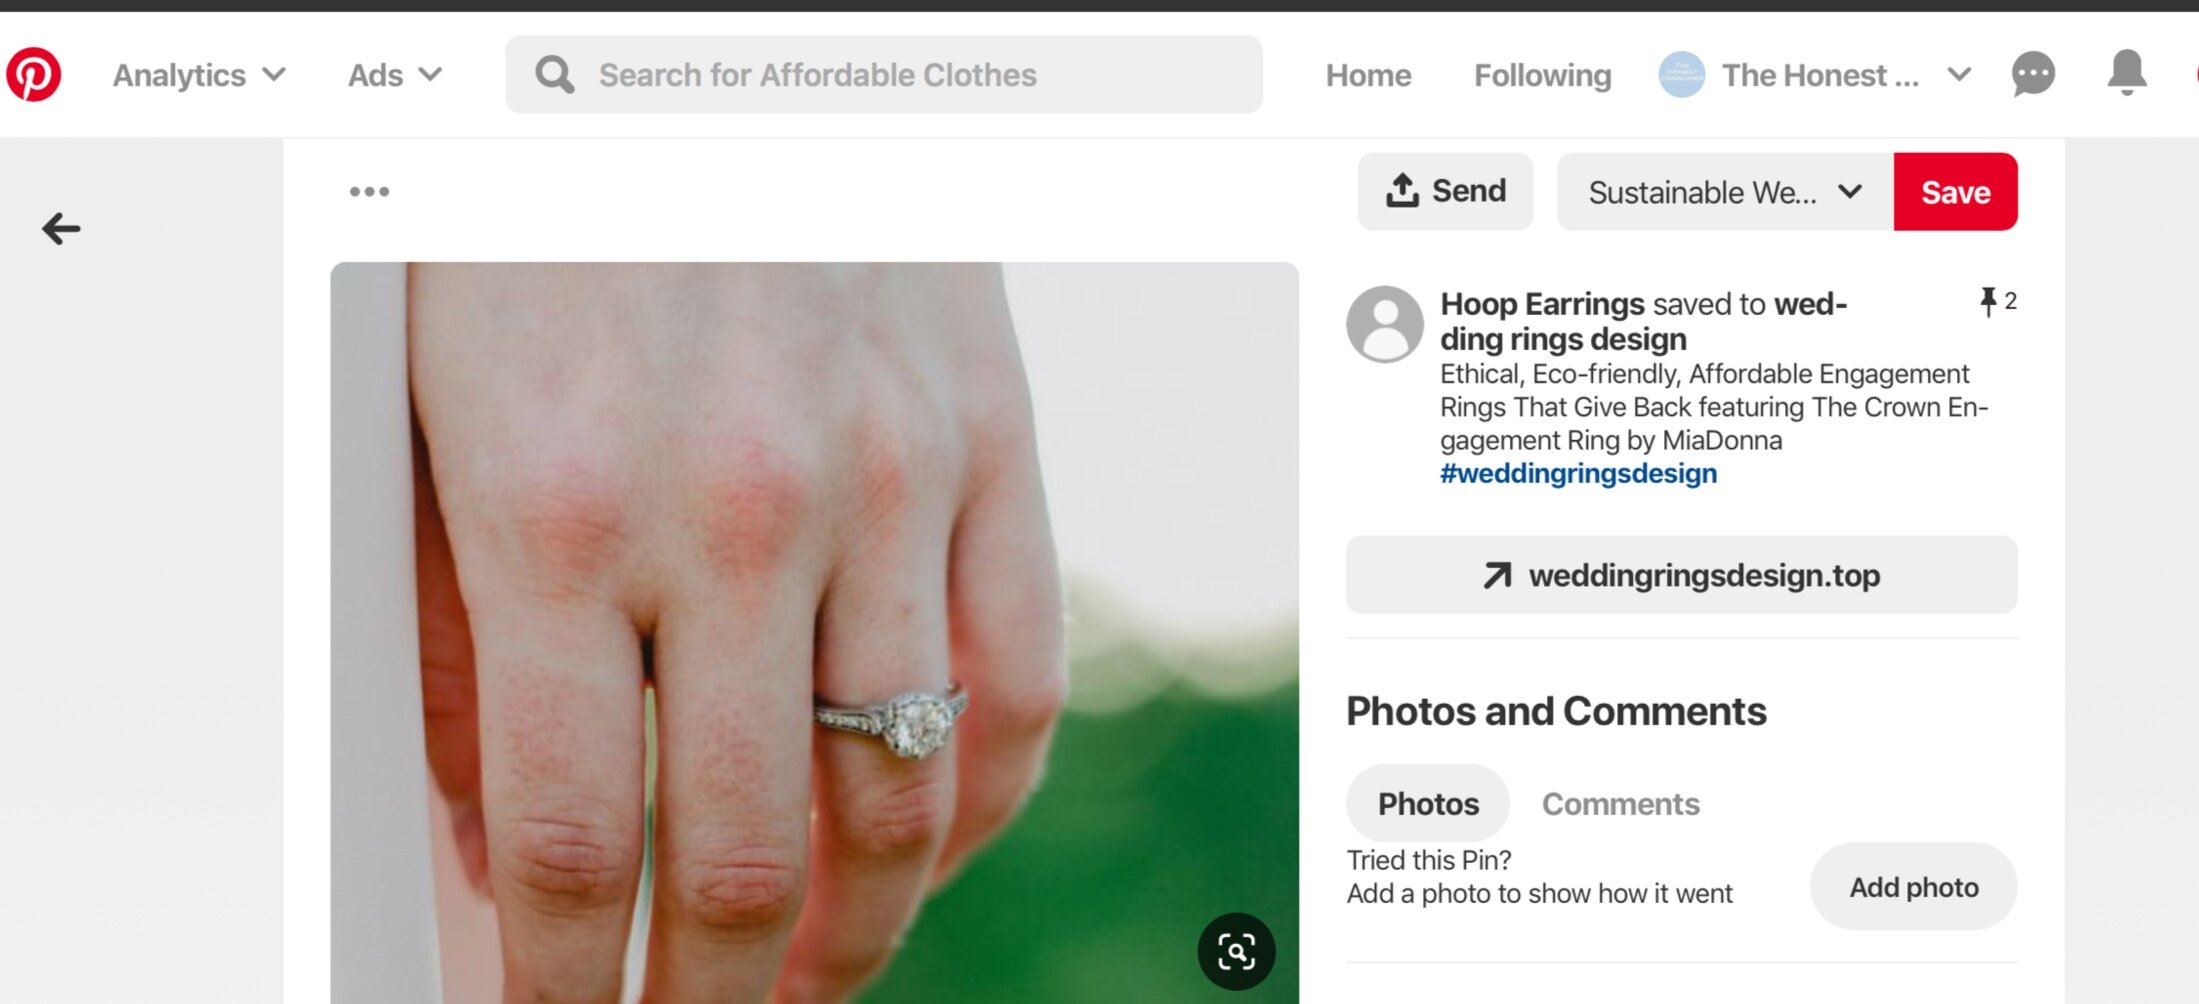 unethical pins on pinterest